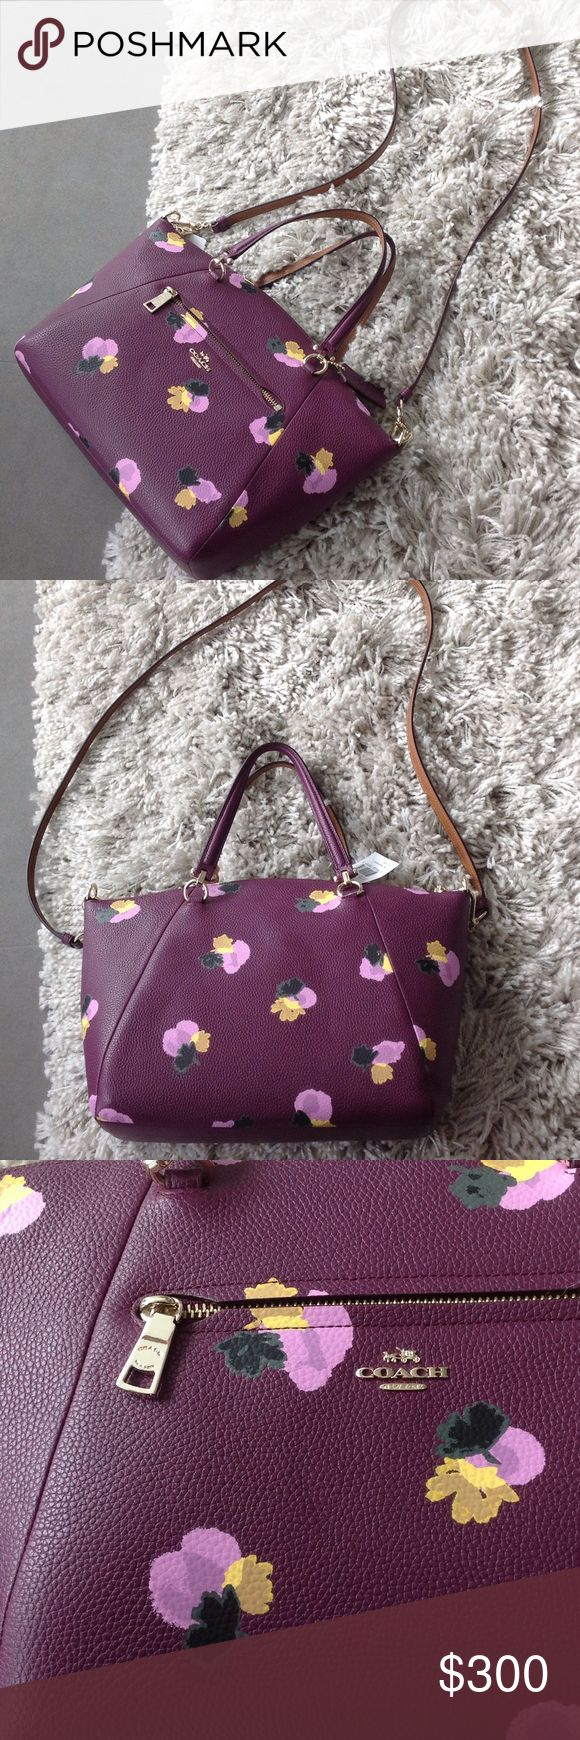 coach floral crossbody handbag printed leather inside zip pocket zip top closure fabric